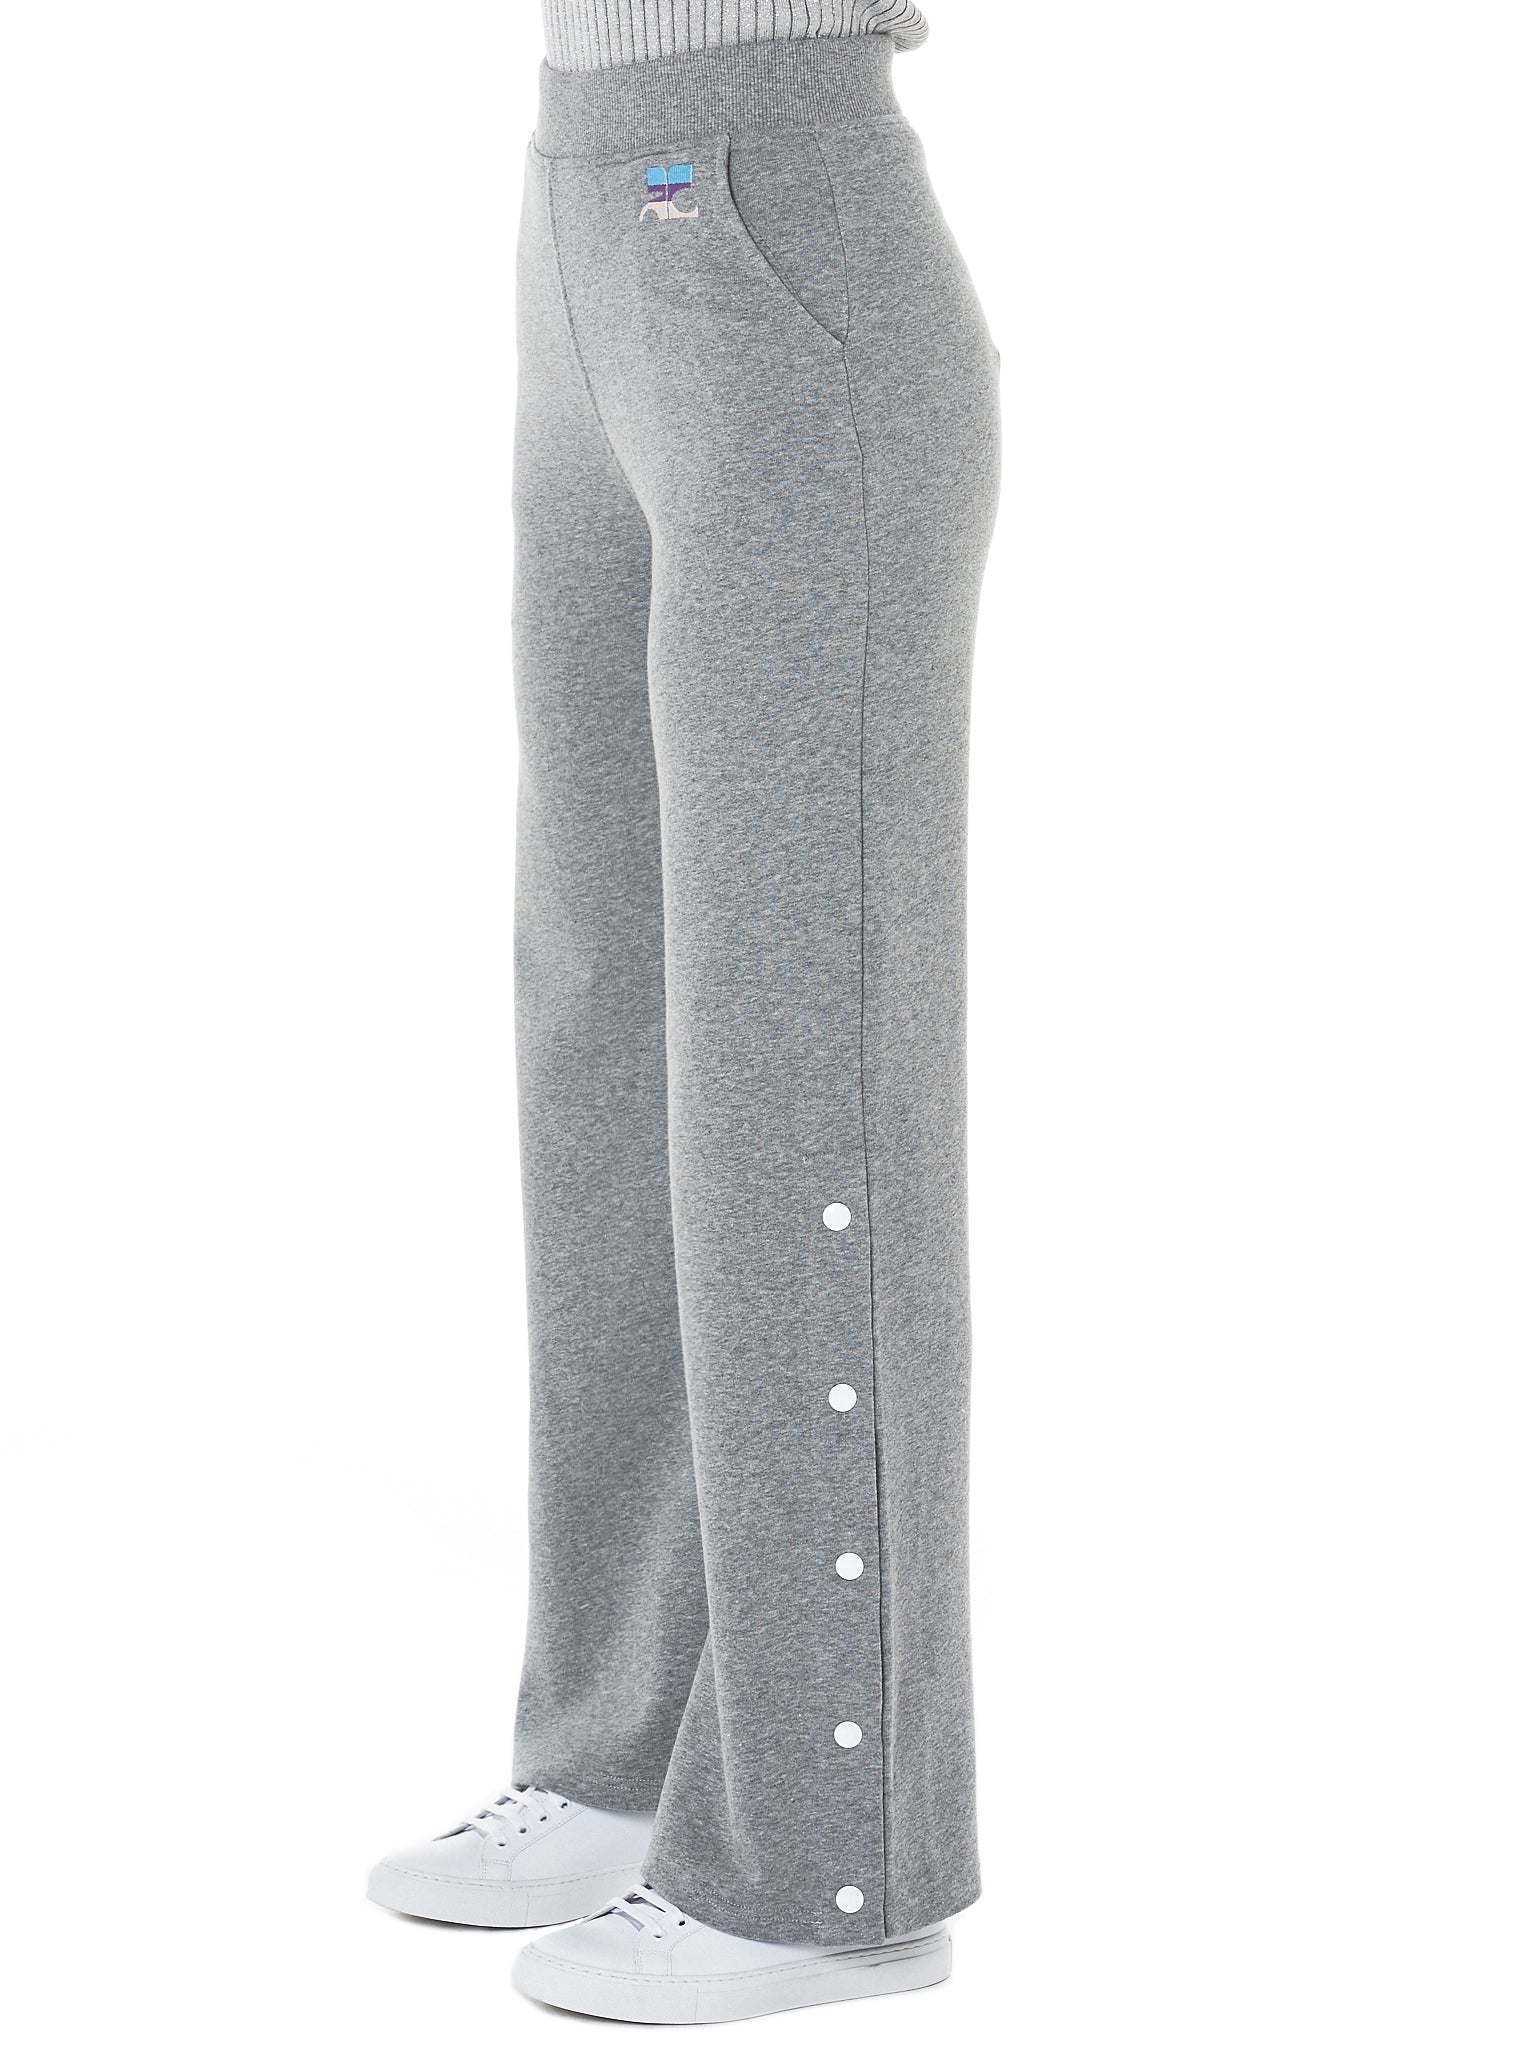 Press Stud Trouser (118JS17J003-932-GREY)